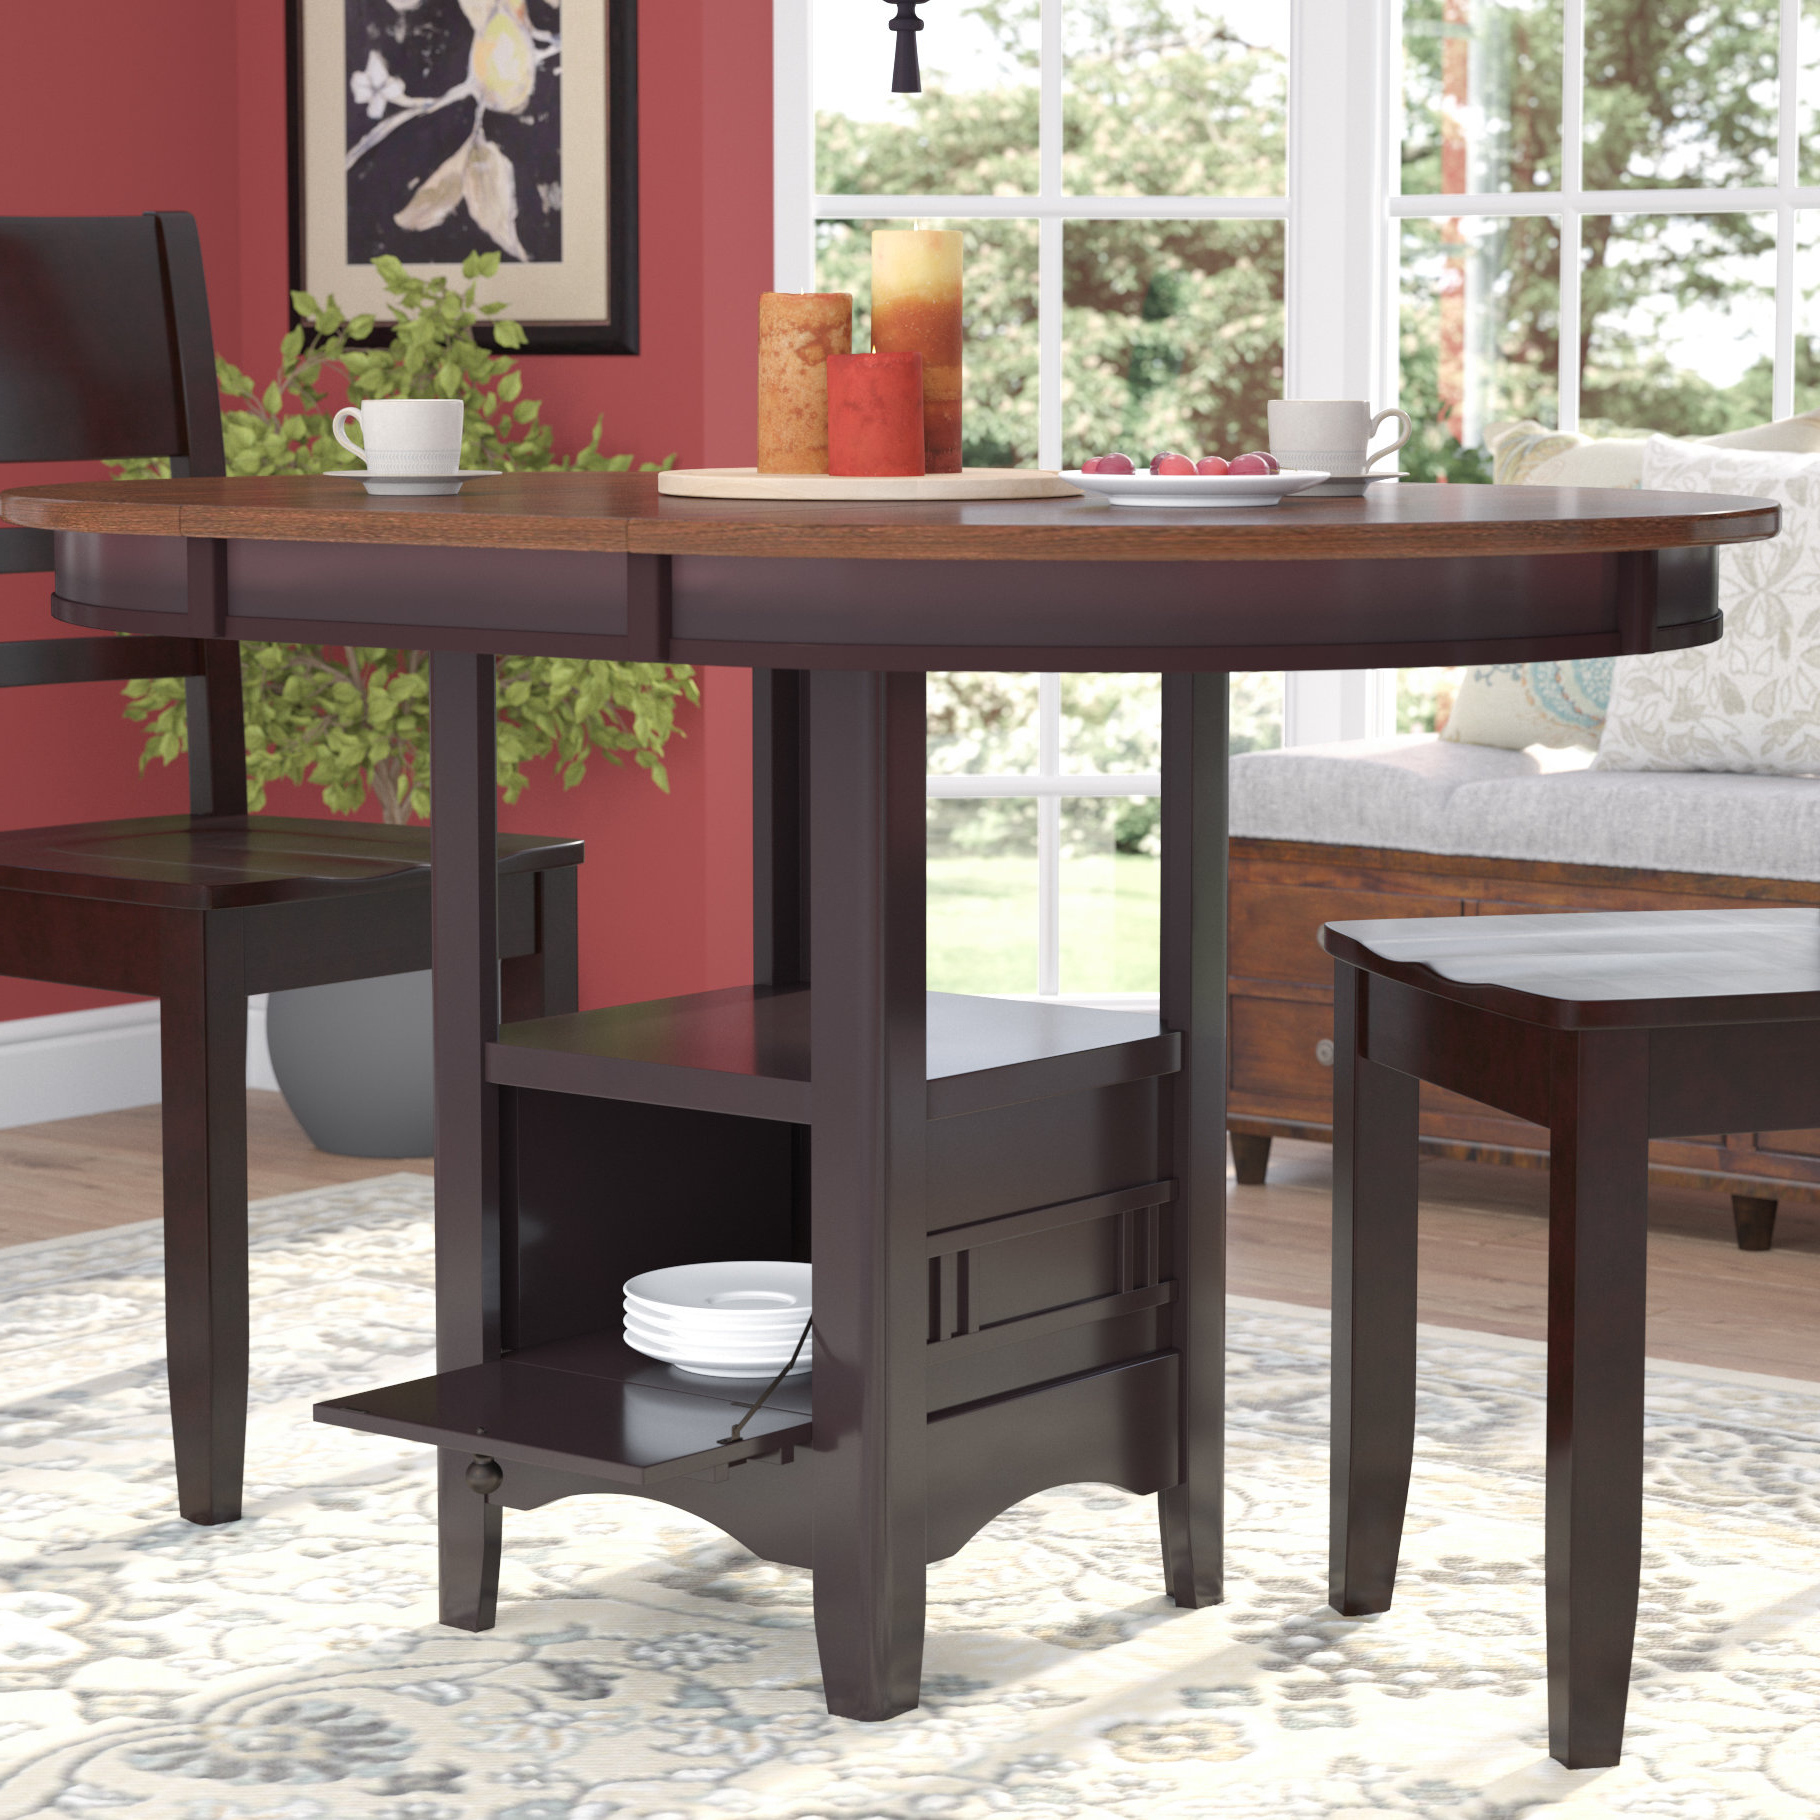 Anette 3 Piece Counter Height Dining Sets Throughout Widely Used Darby Home Co Sinkler Counter Height Drop Leaf Dining Table (View 9 of 25)